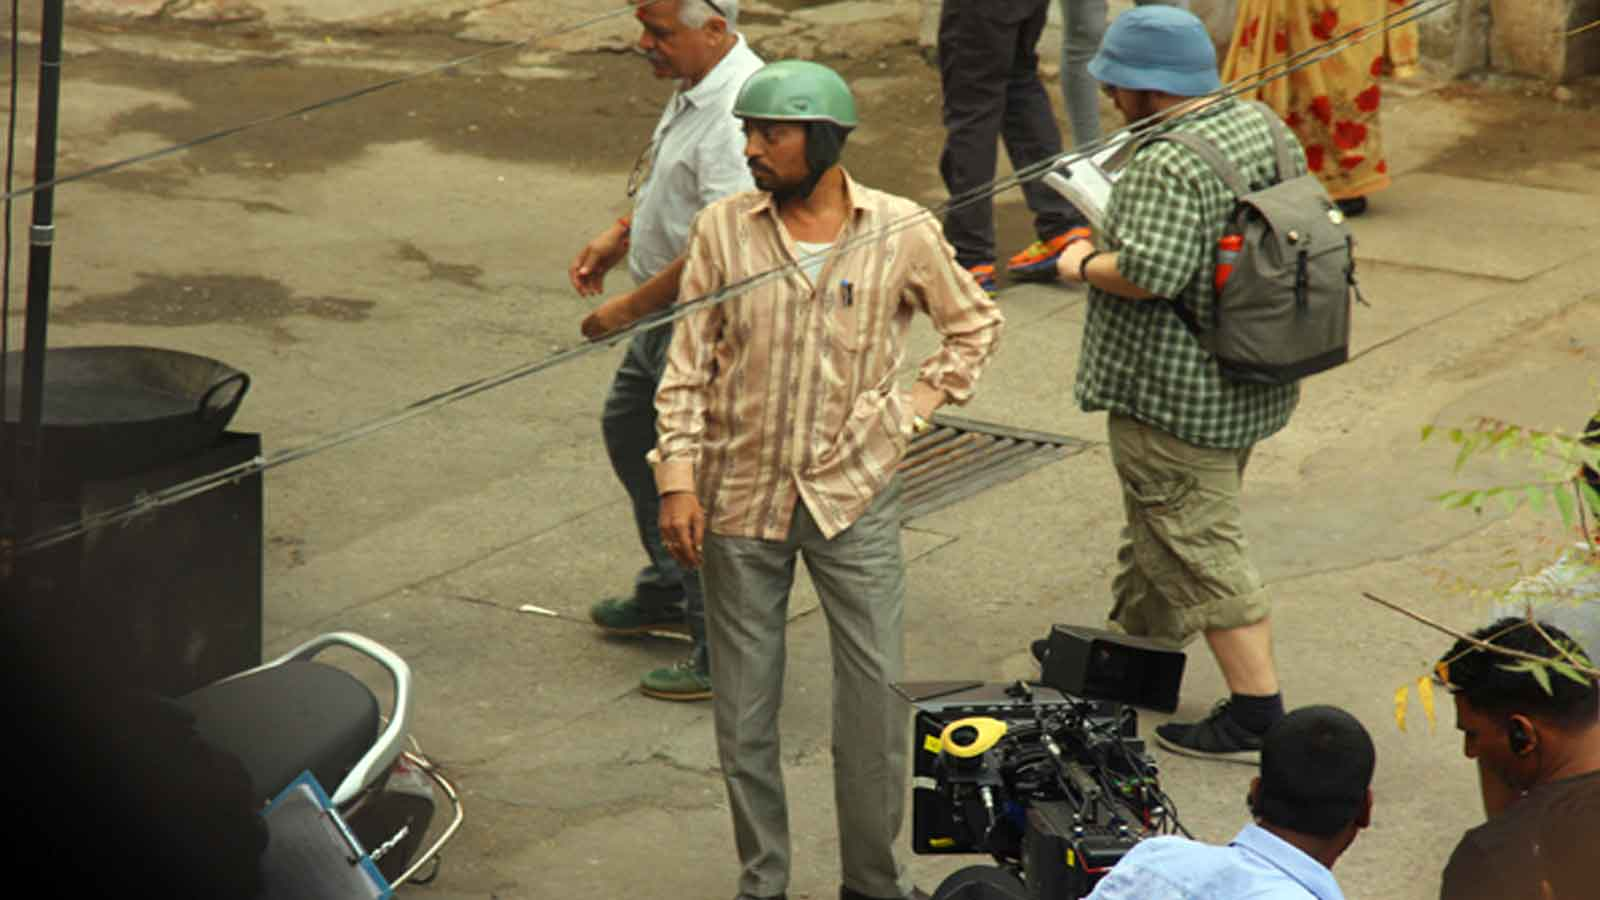 Irrfan Khan shoots on the roads of Udaipur